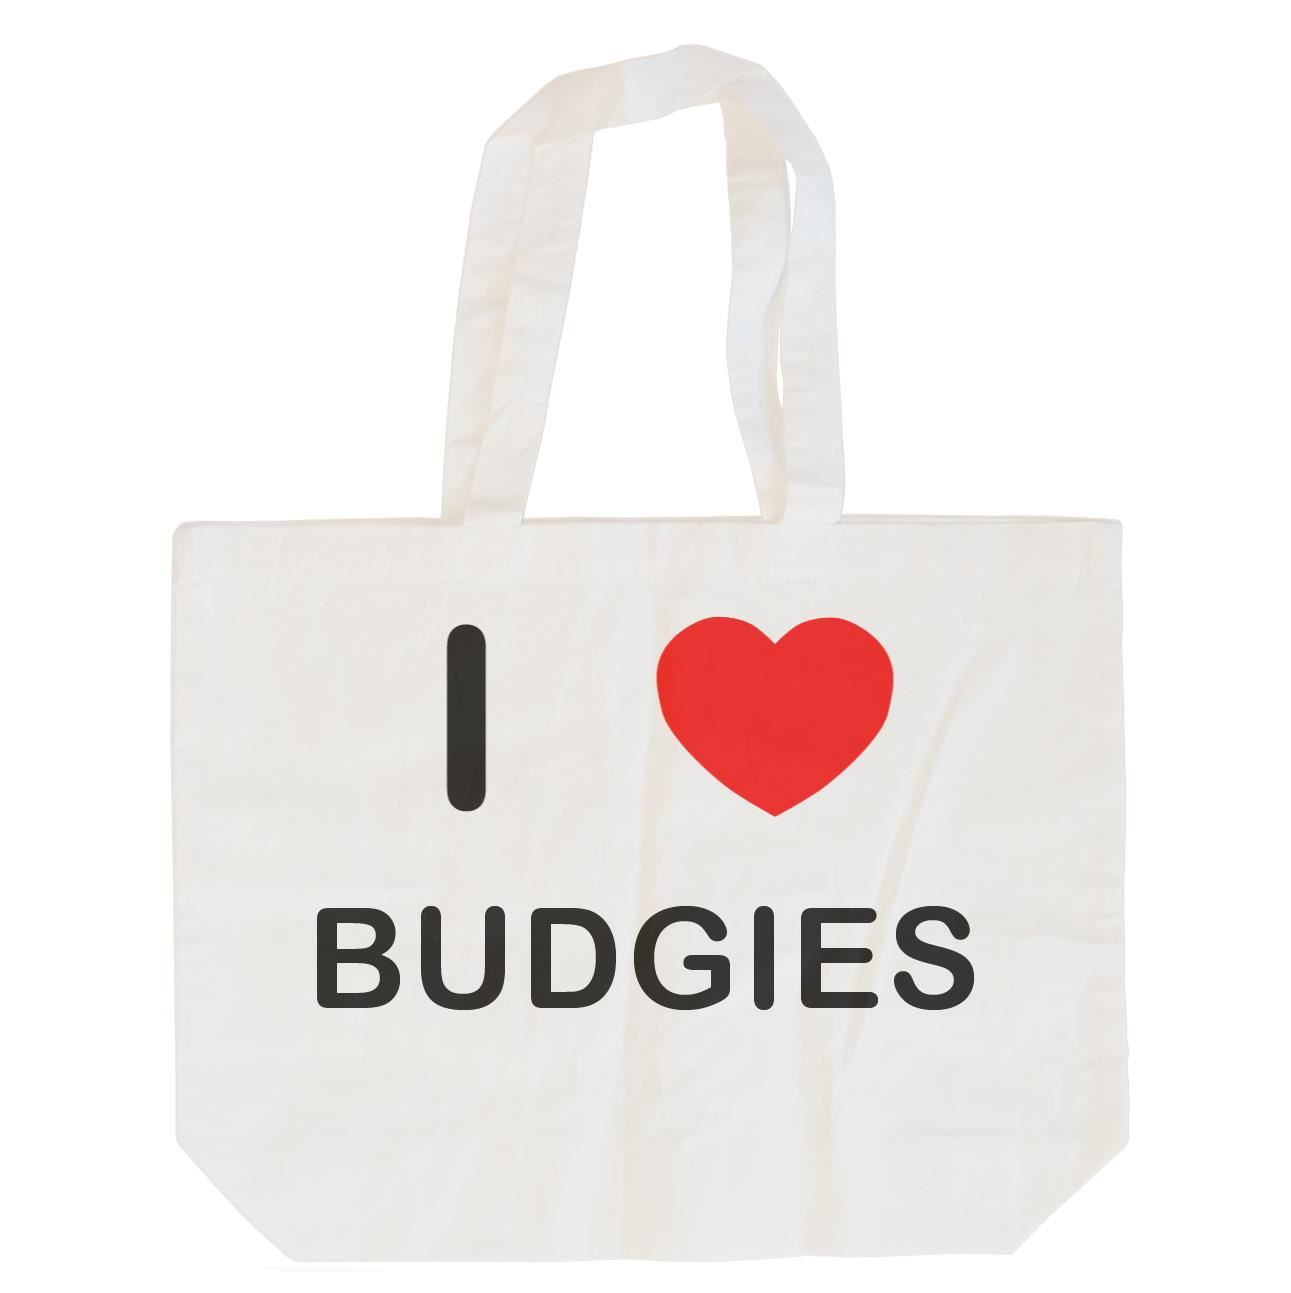 I Love Budgies - Cotton Bag | Size choice Tote, Shopper or Sling